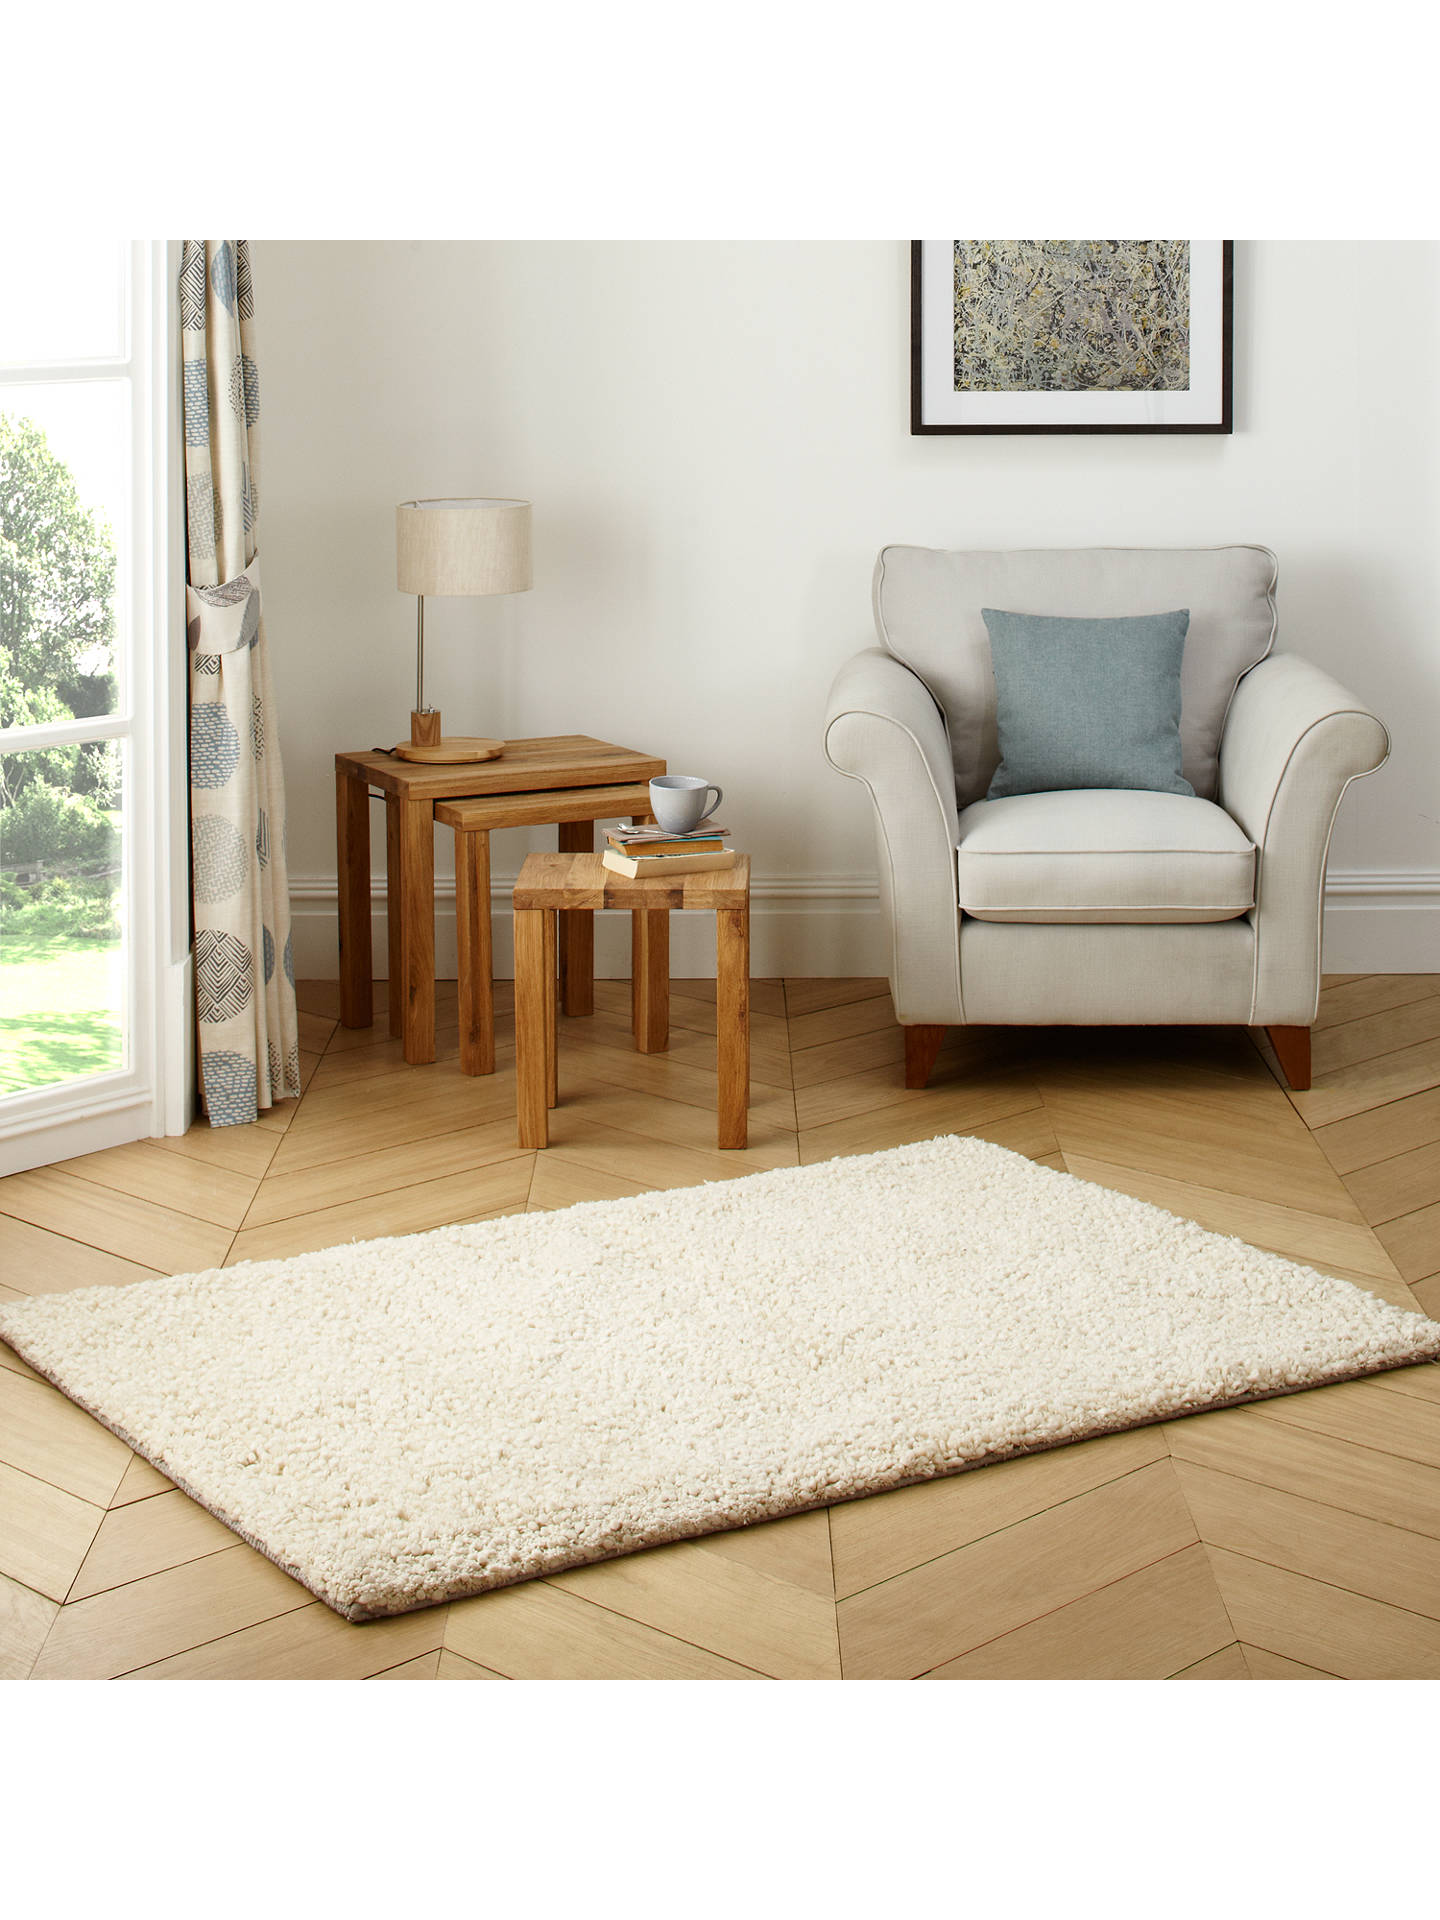 Buy John Lewis & Partners Darwin Rug, Cream, L240 x W170cm Online at johnlewis.com